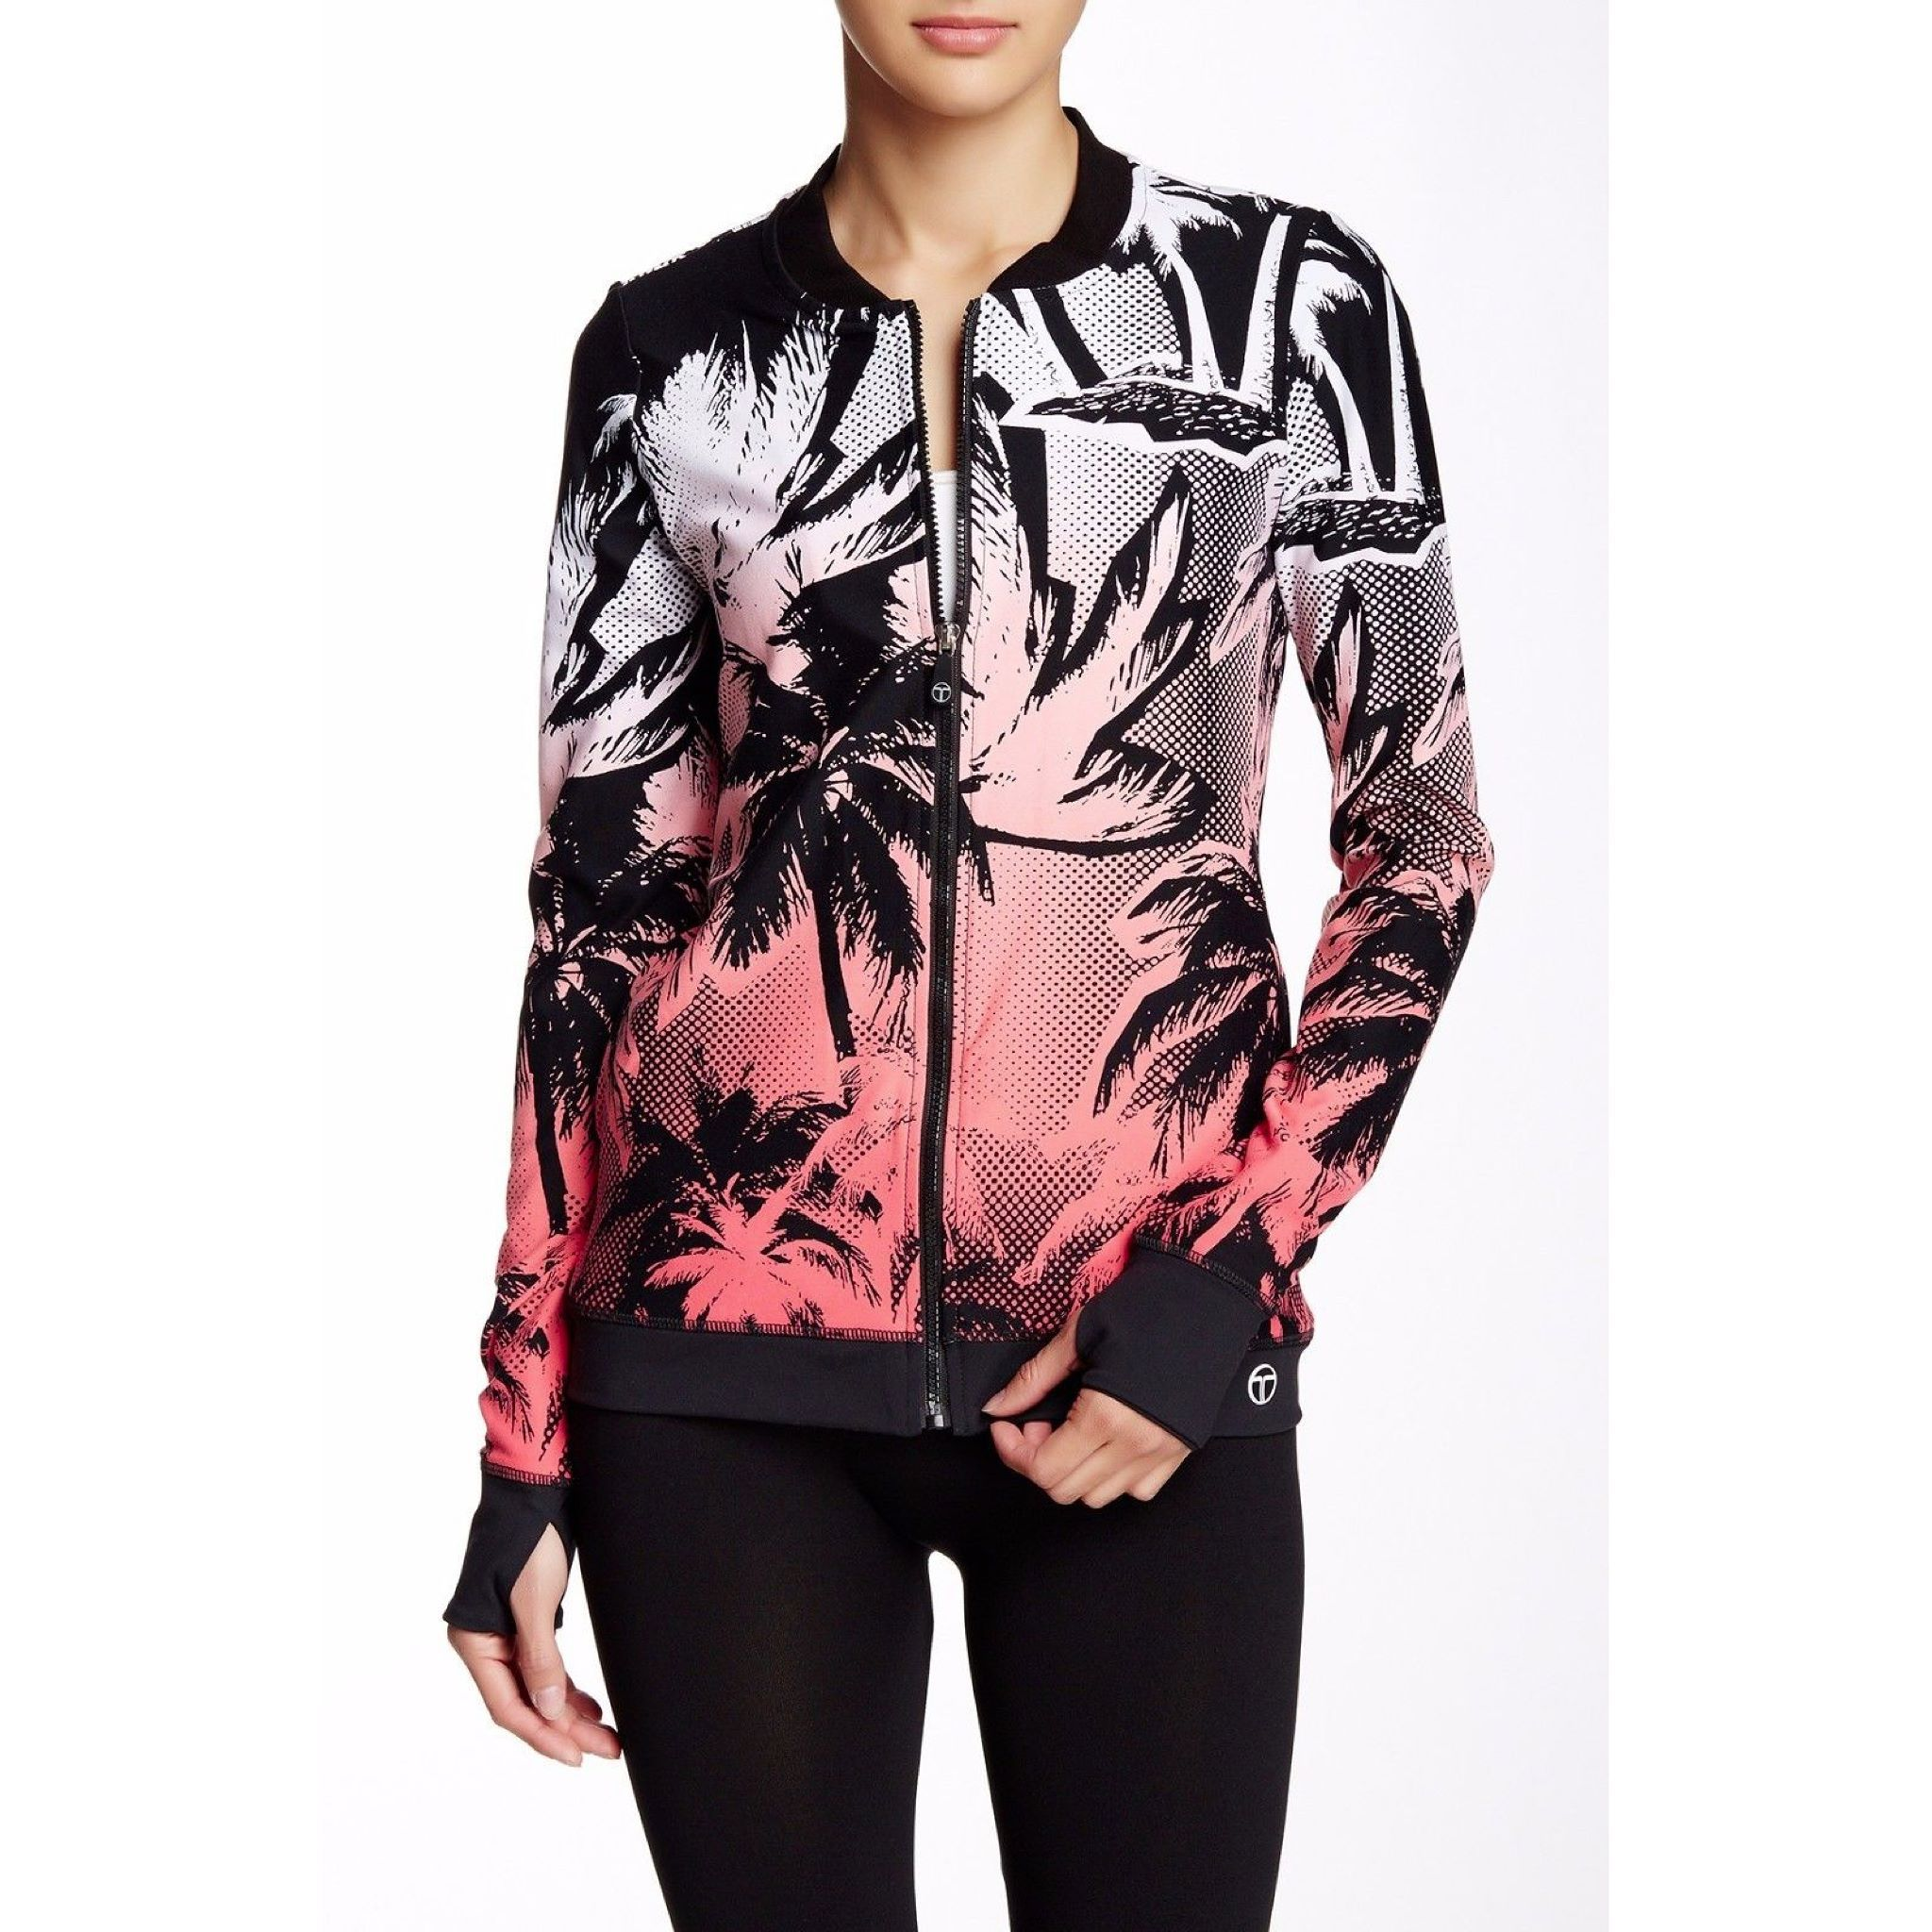 Youll never have to sacrifice style when you are running to and from the gym in this #trinaturk Palm Beach Bomber Jacket. With a cool ombre palm tree print and moisture wicking for comfortable wear its a piece youll wear wherever youre headed. Shop Link in Bio. #swankybazaar